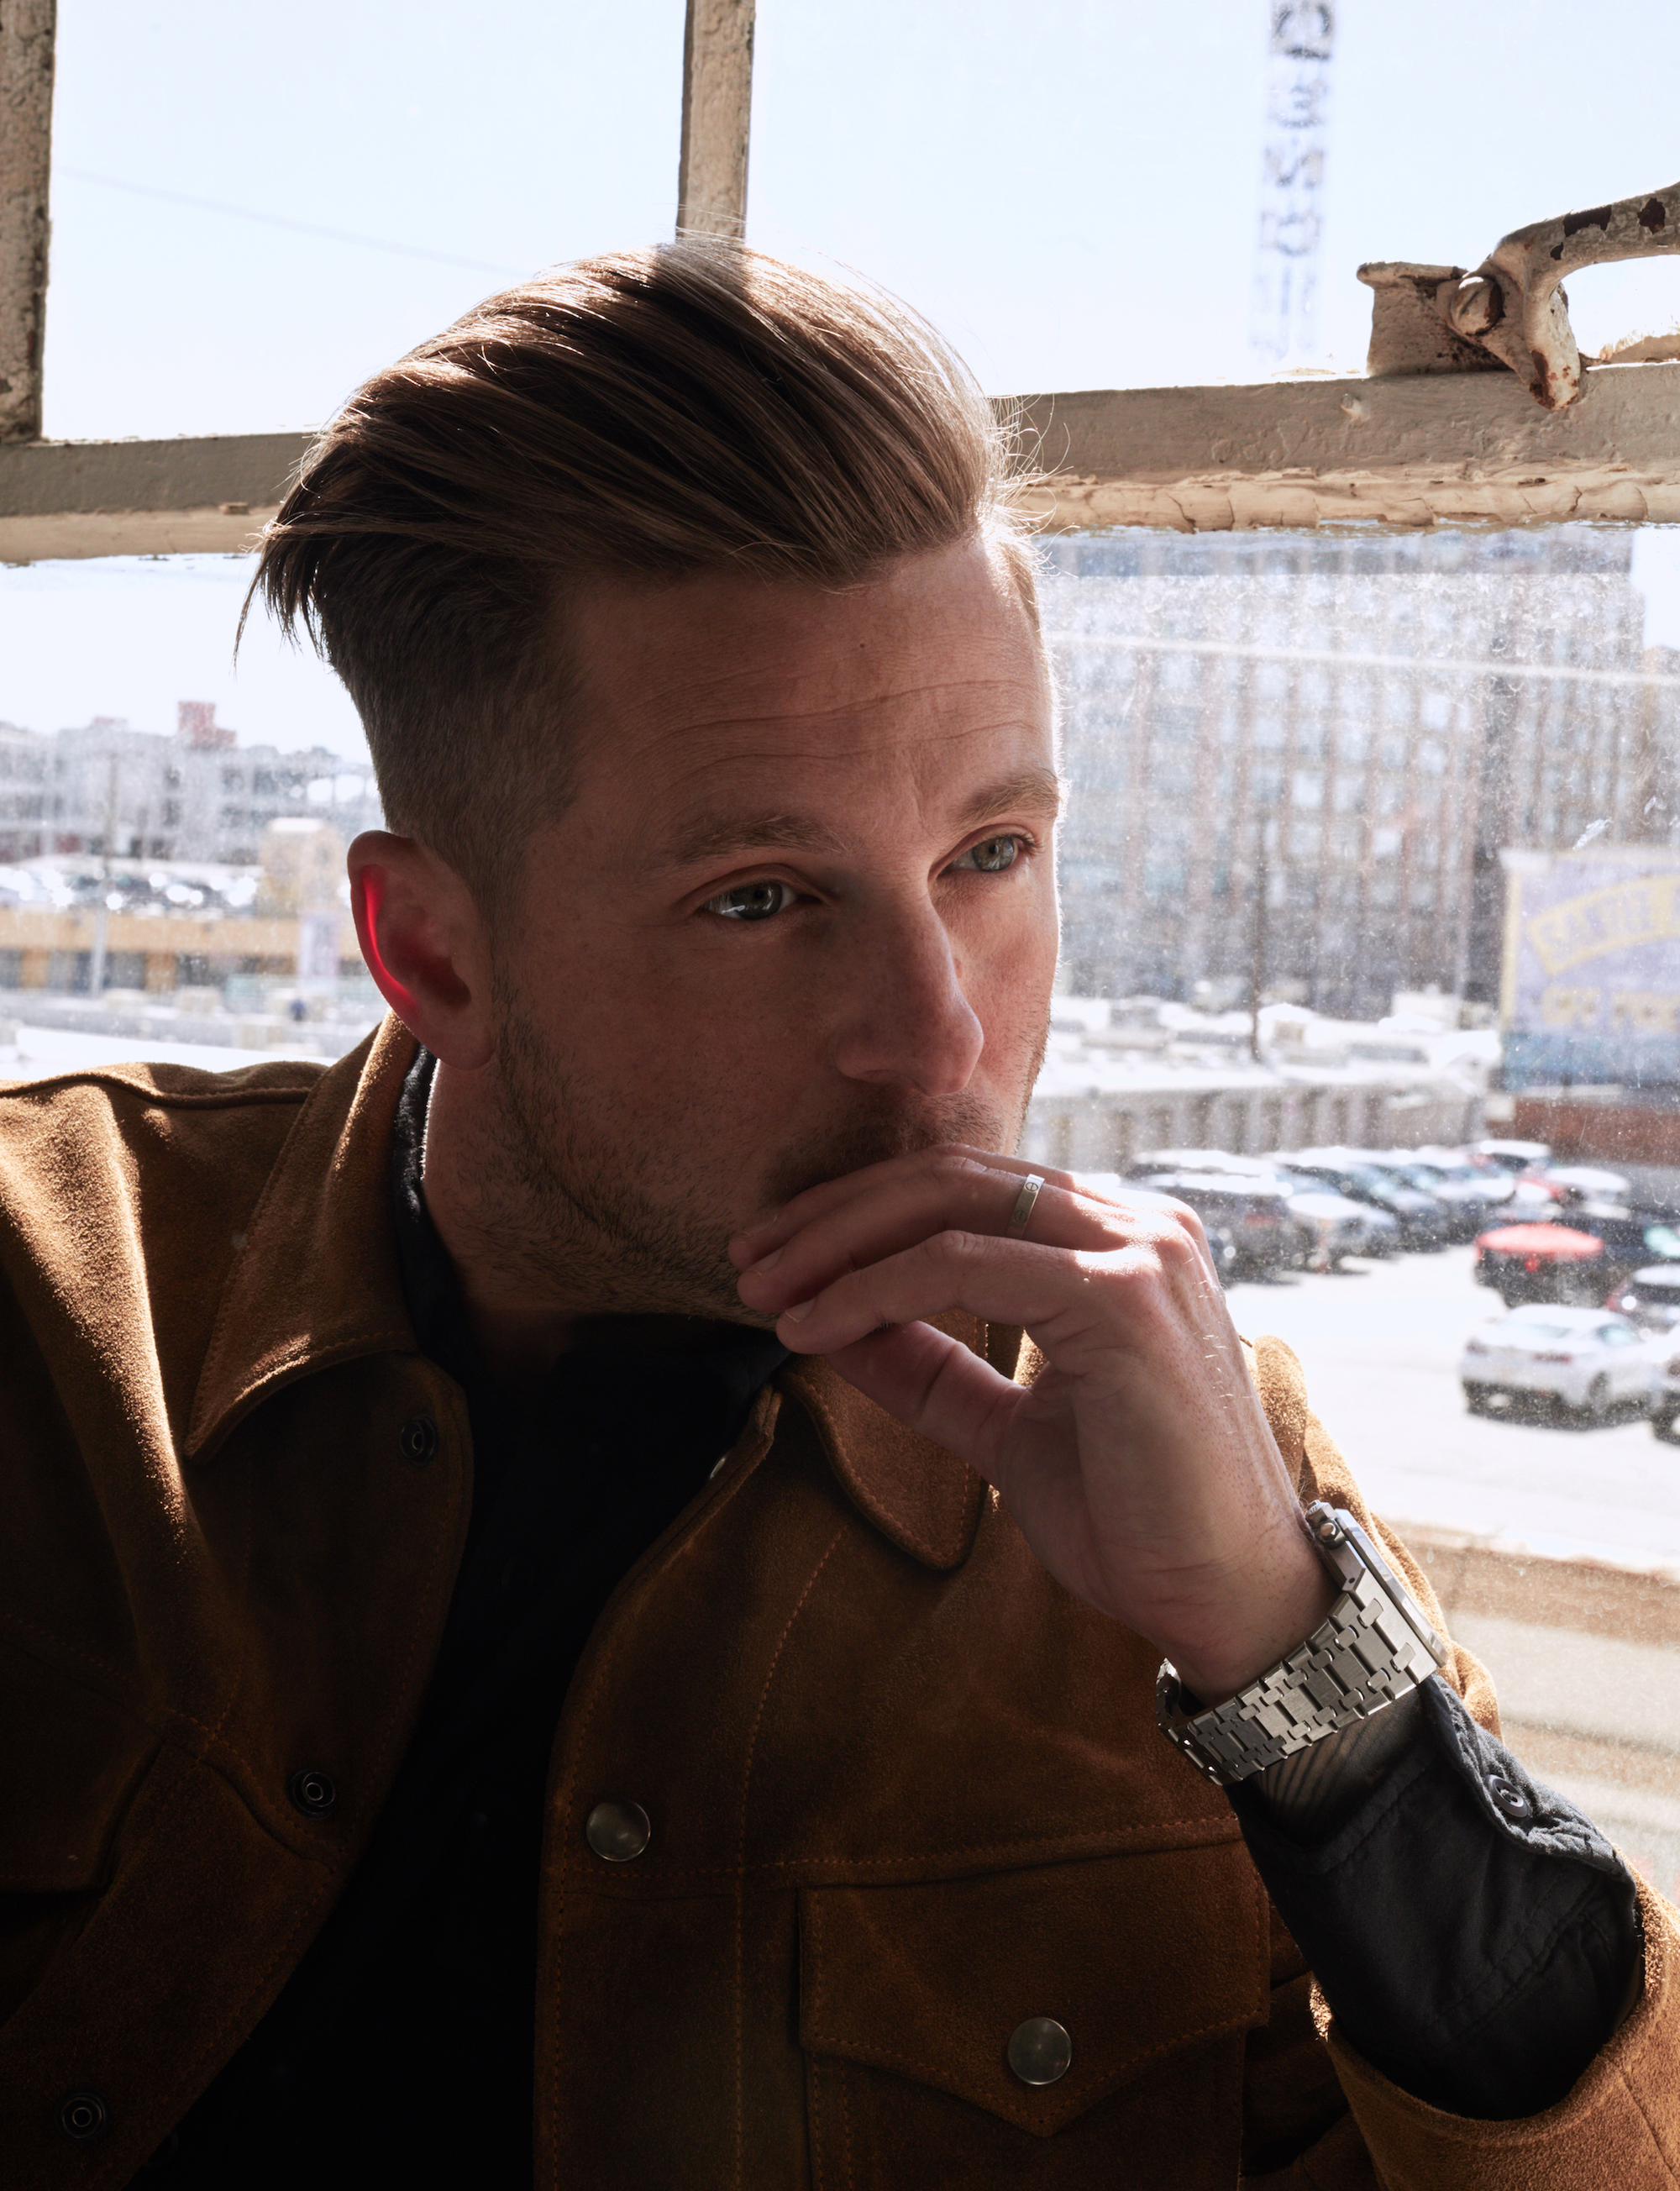 Ryan Tedder, frontman of OneRepublic, interview with Wonderland closeup by window